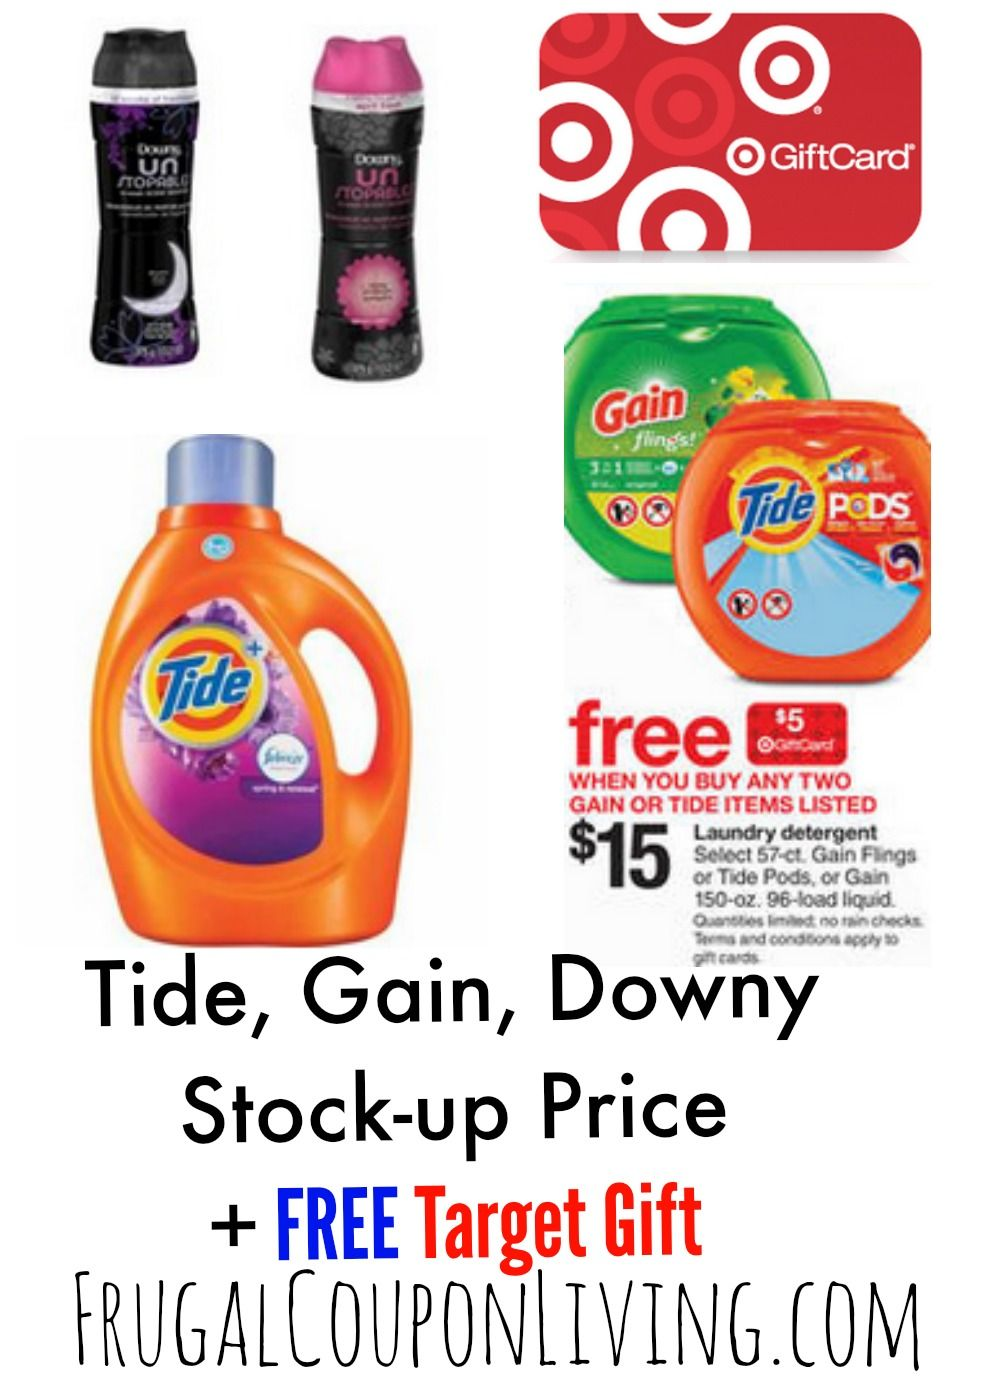 Target Laundry Detergent Deals Tide Downy Printable Coupons